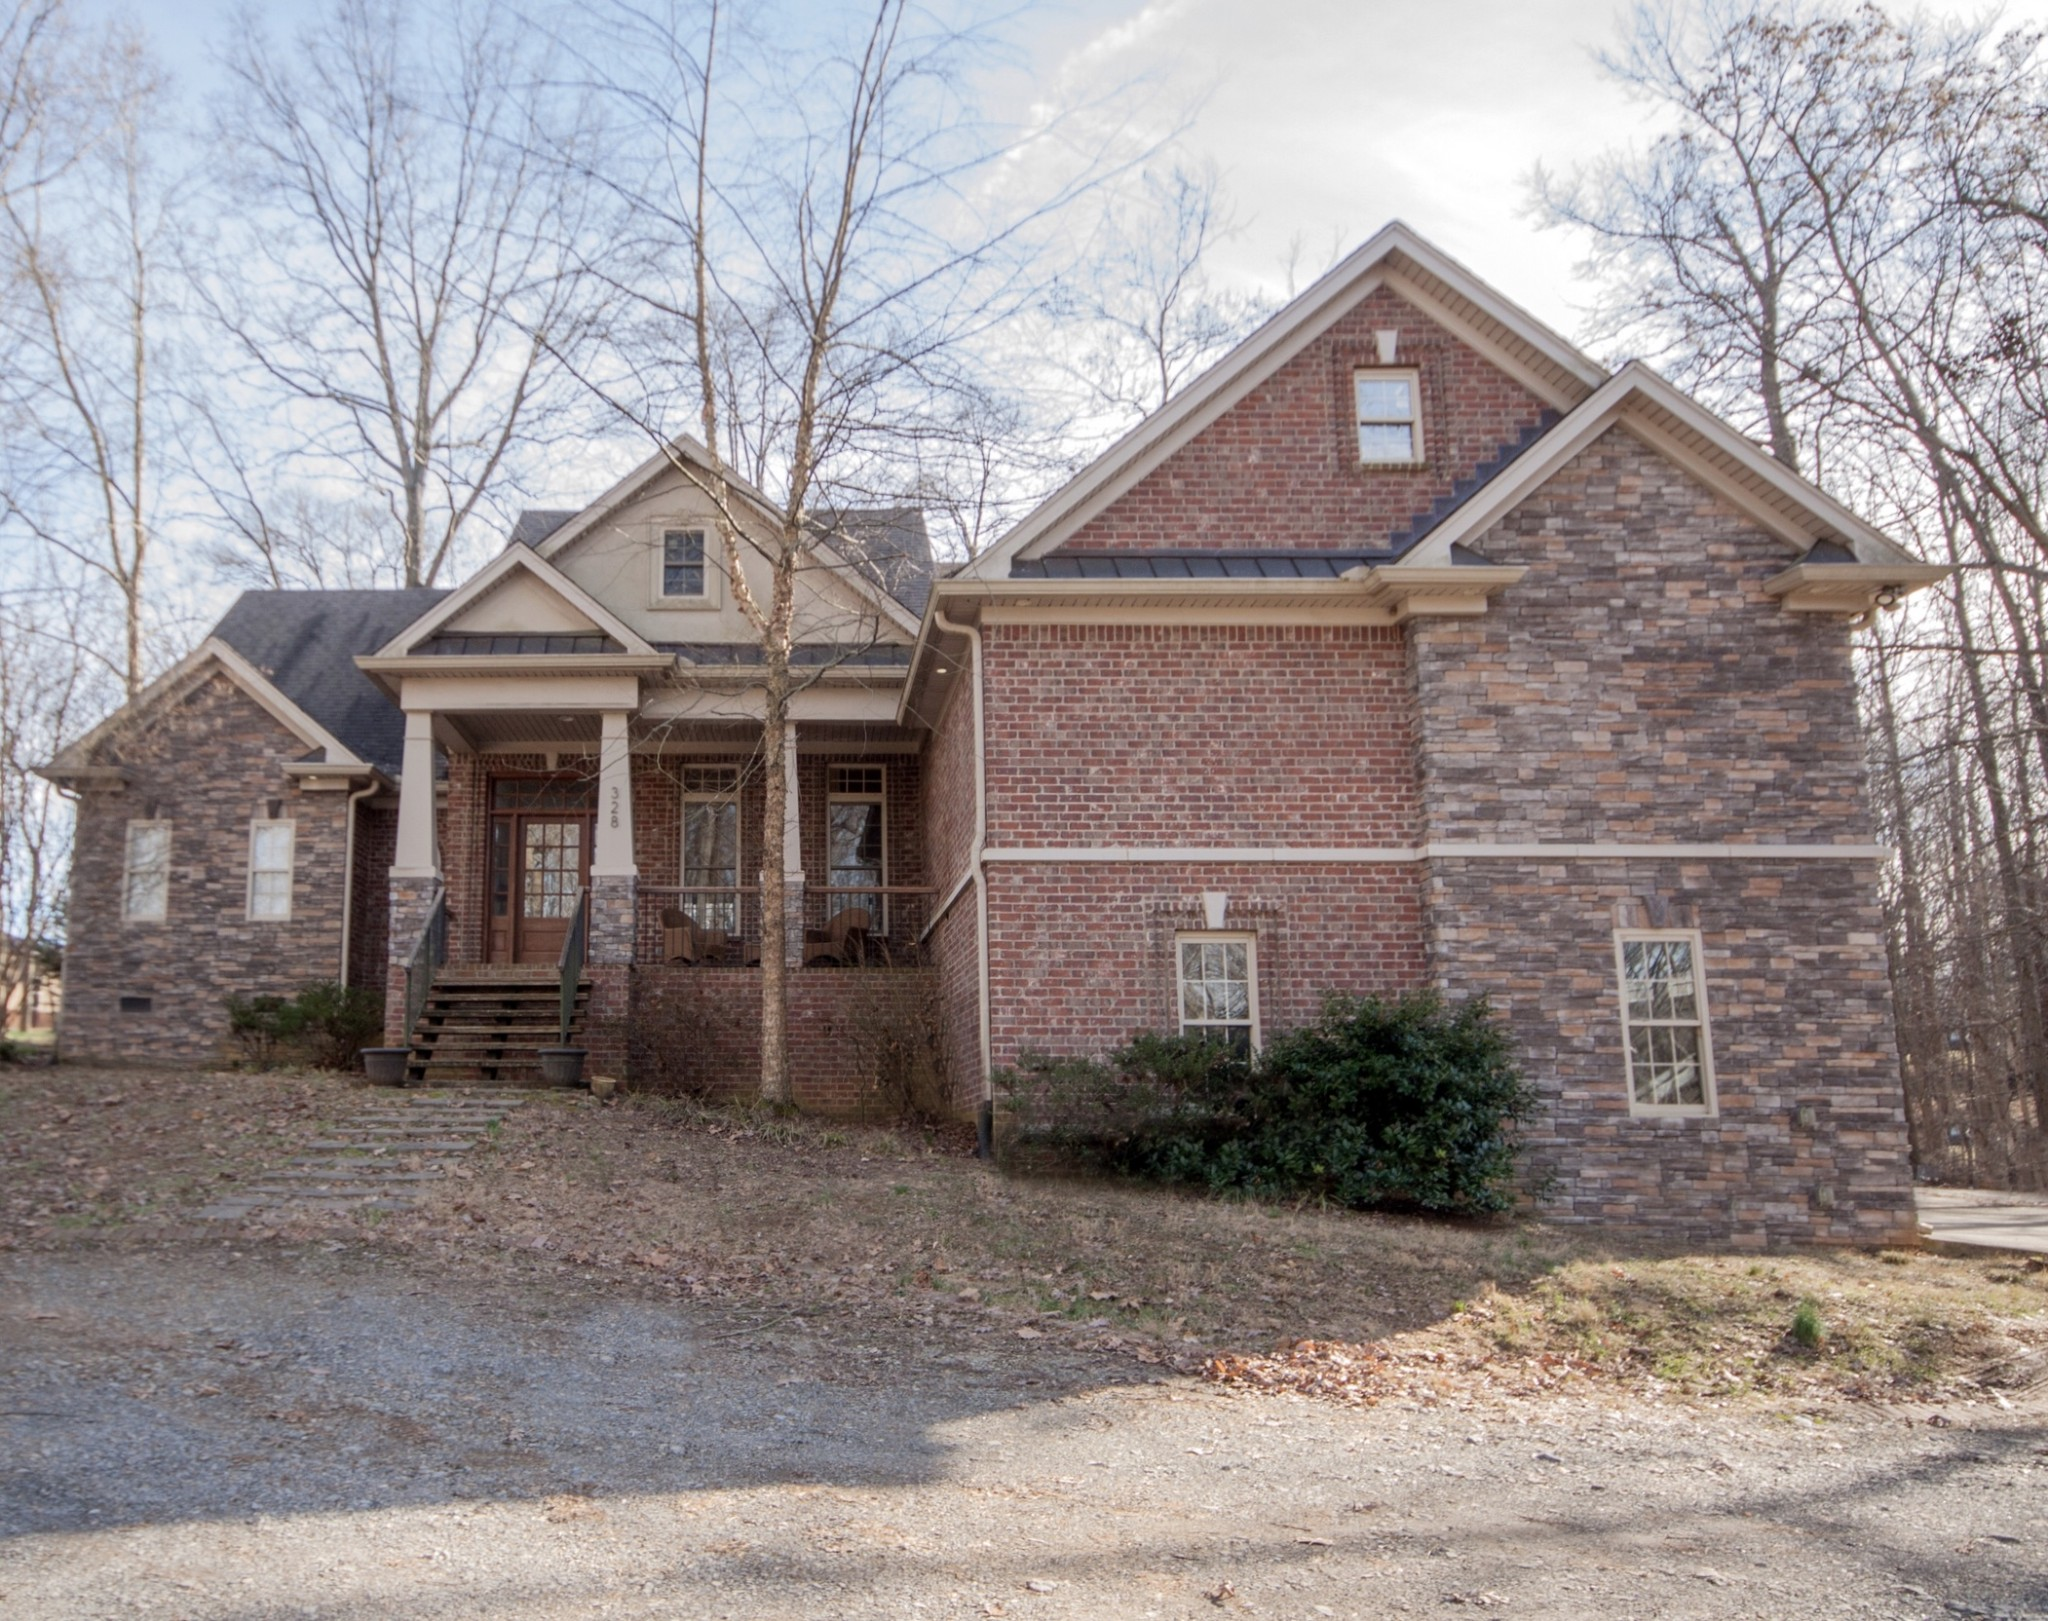 328 Martin LN, Cottontown, TN 37048 - Cottontown, TN real estate listing